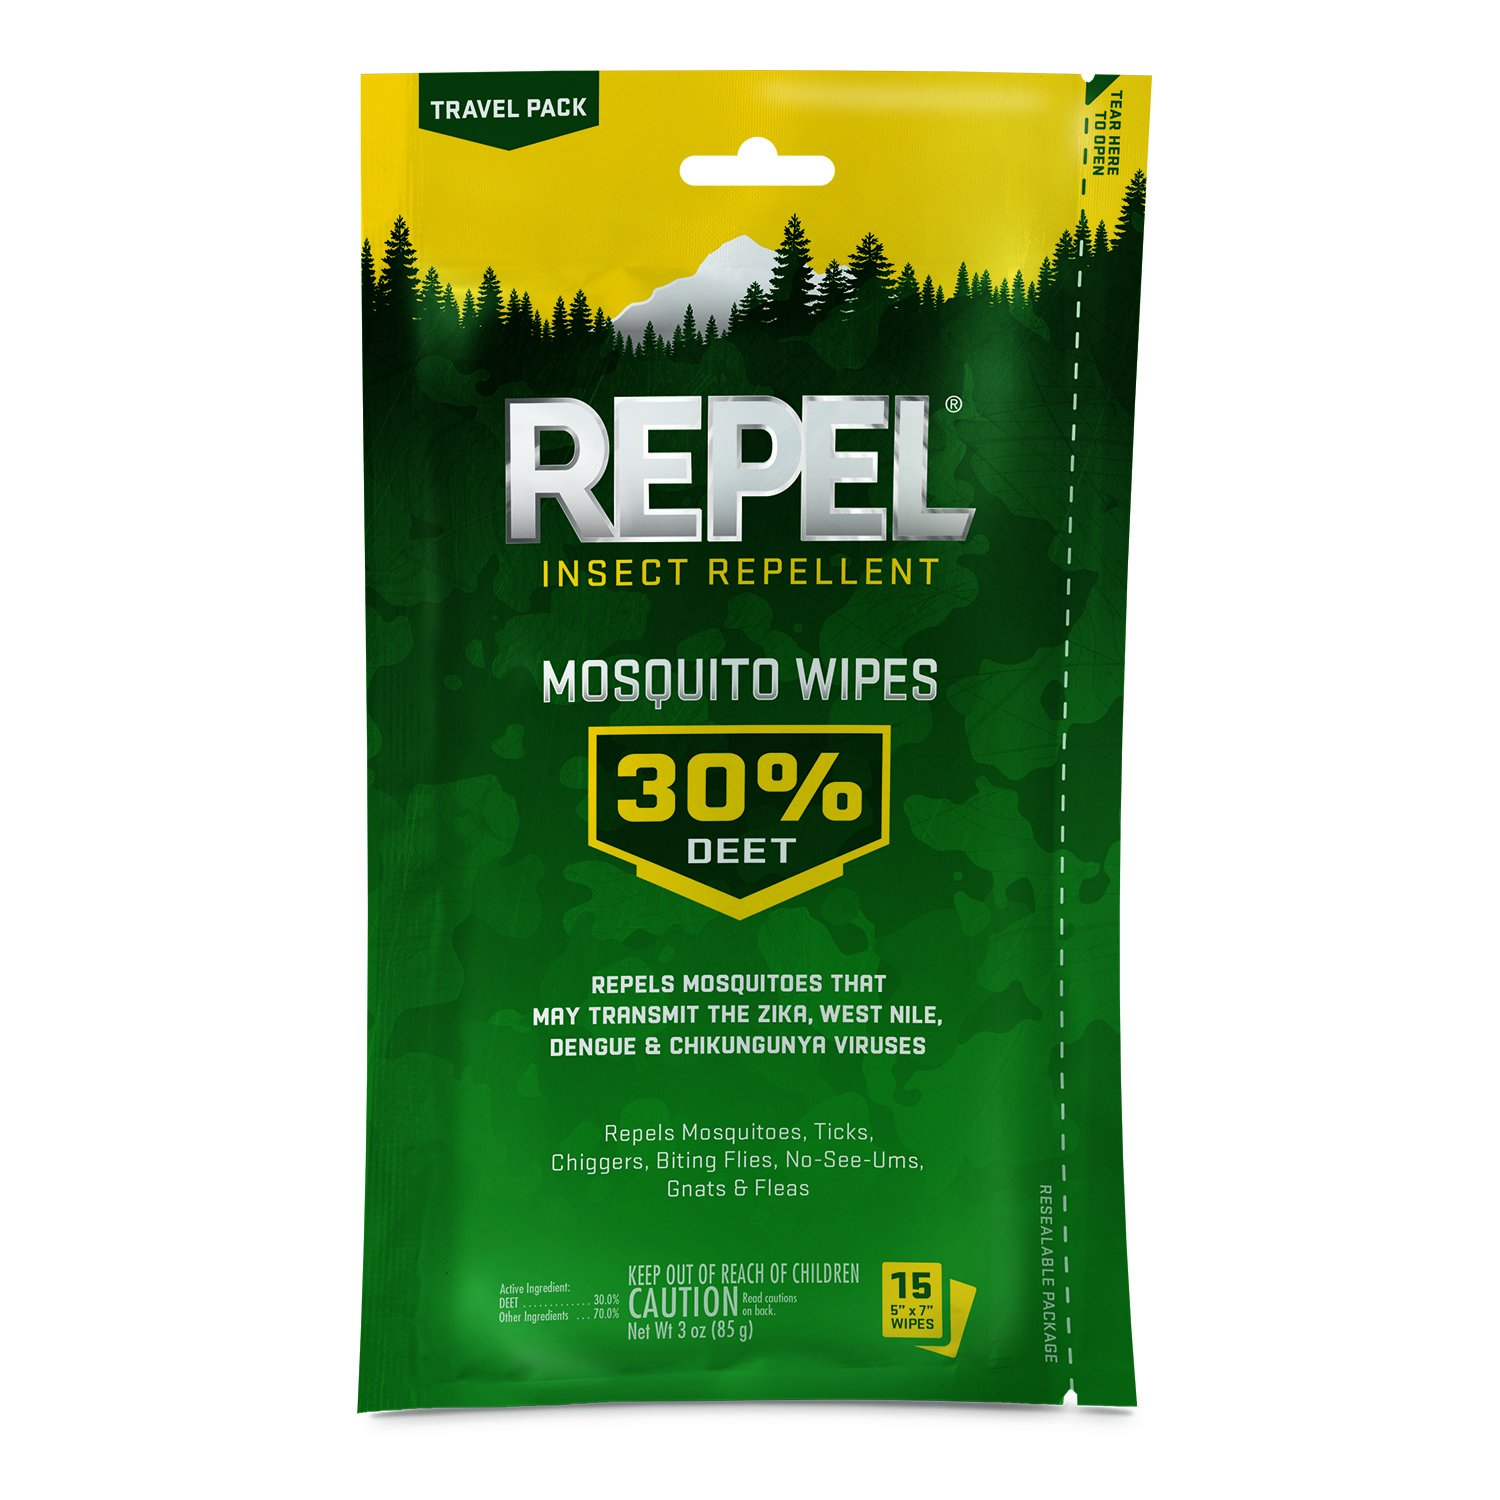 Repel Insect Repellent Mosquito Wipes 30% DEET, 15-Count, 6-Count by Repel